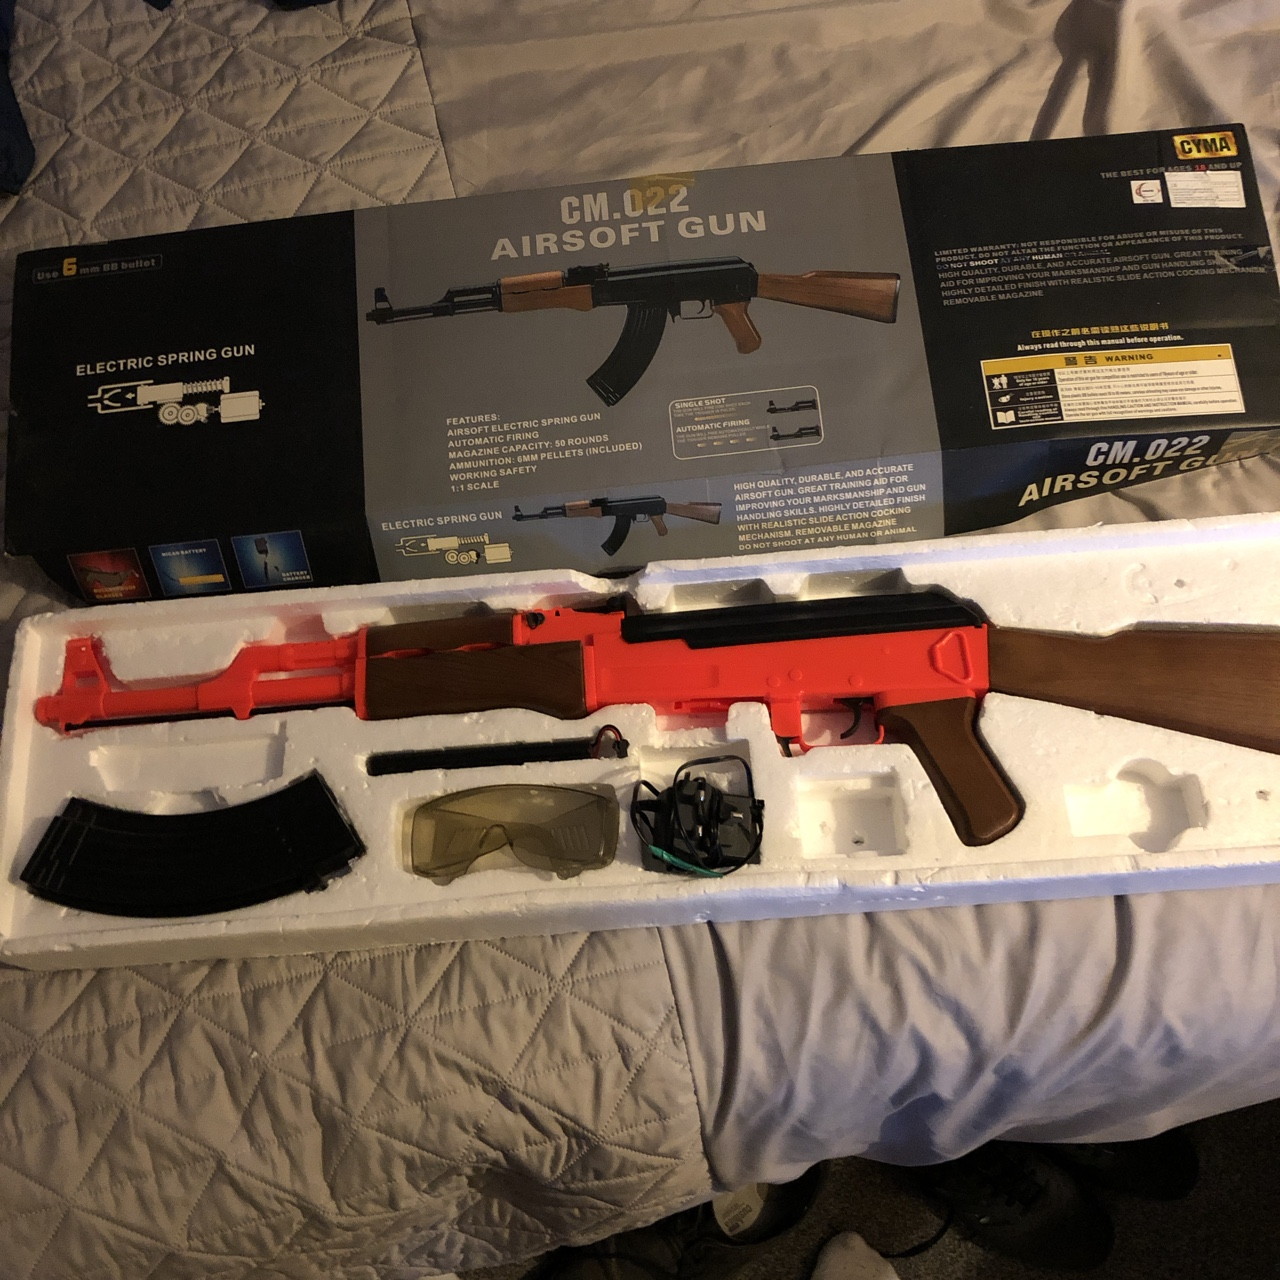 CM 022 AK47 airsoft rifle Powered by a charged    - Depop